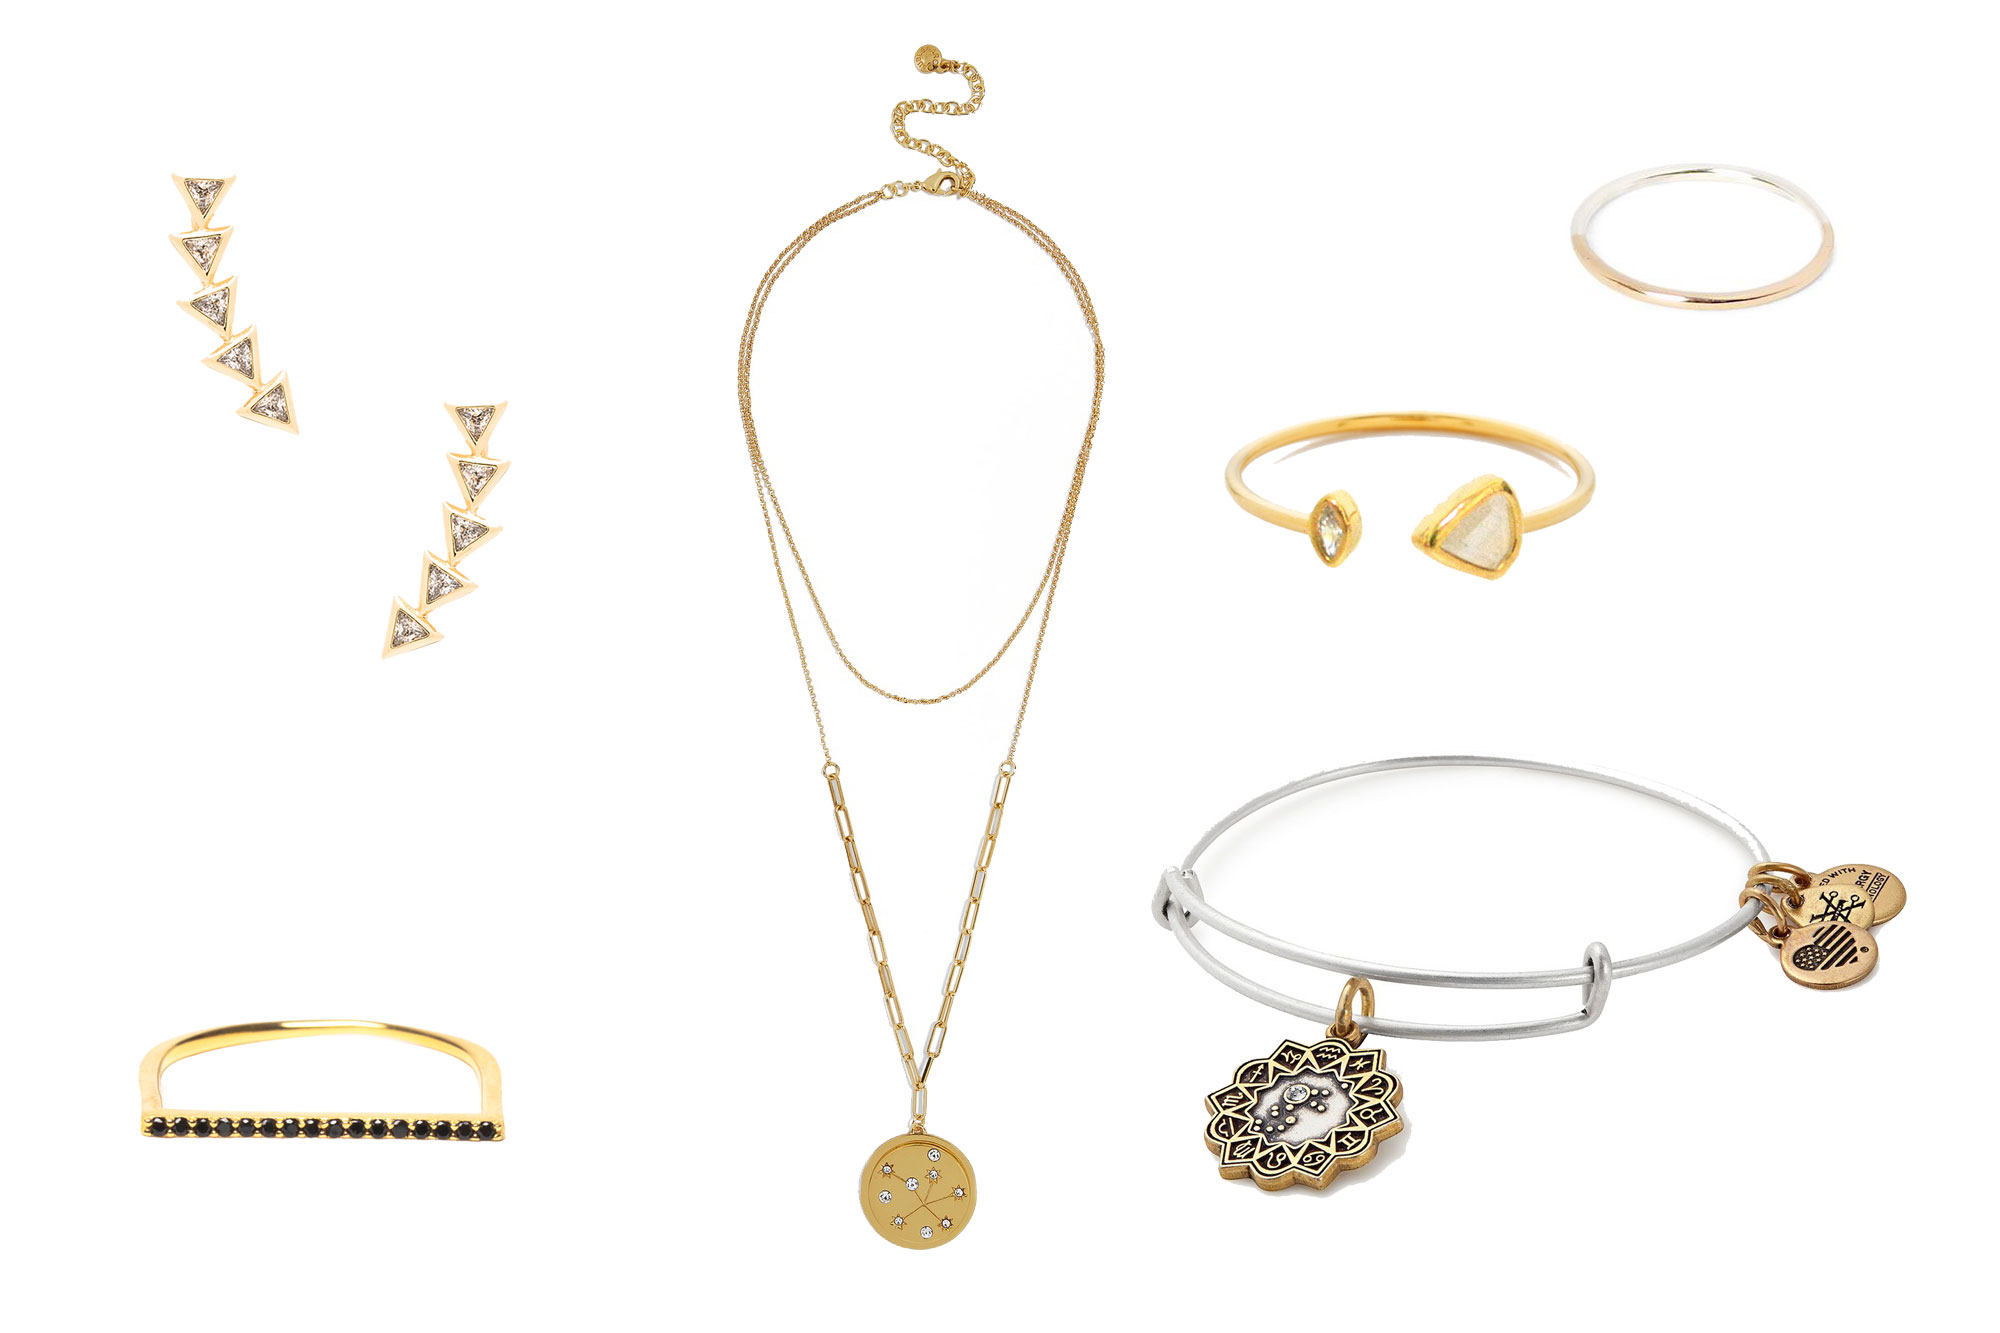 JEWELRY UNDER $50 Gift Guide Tout